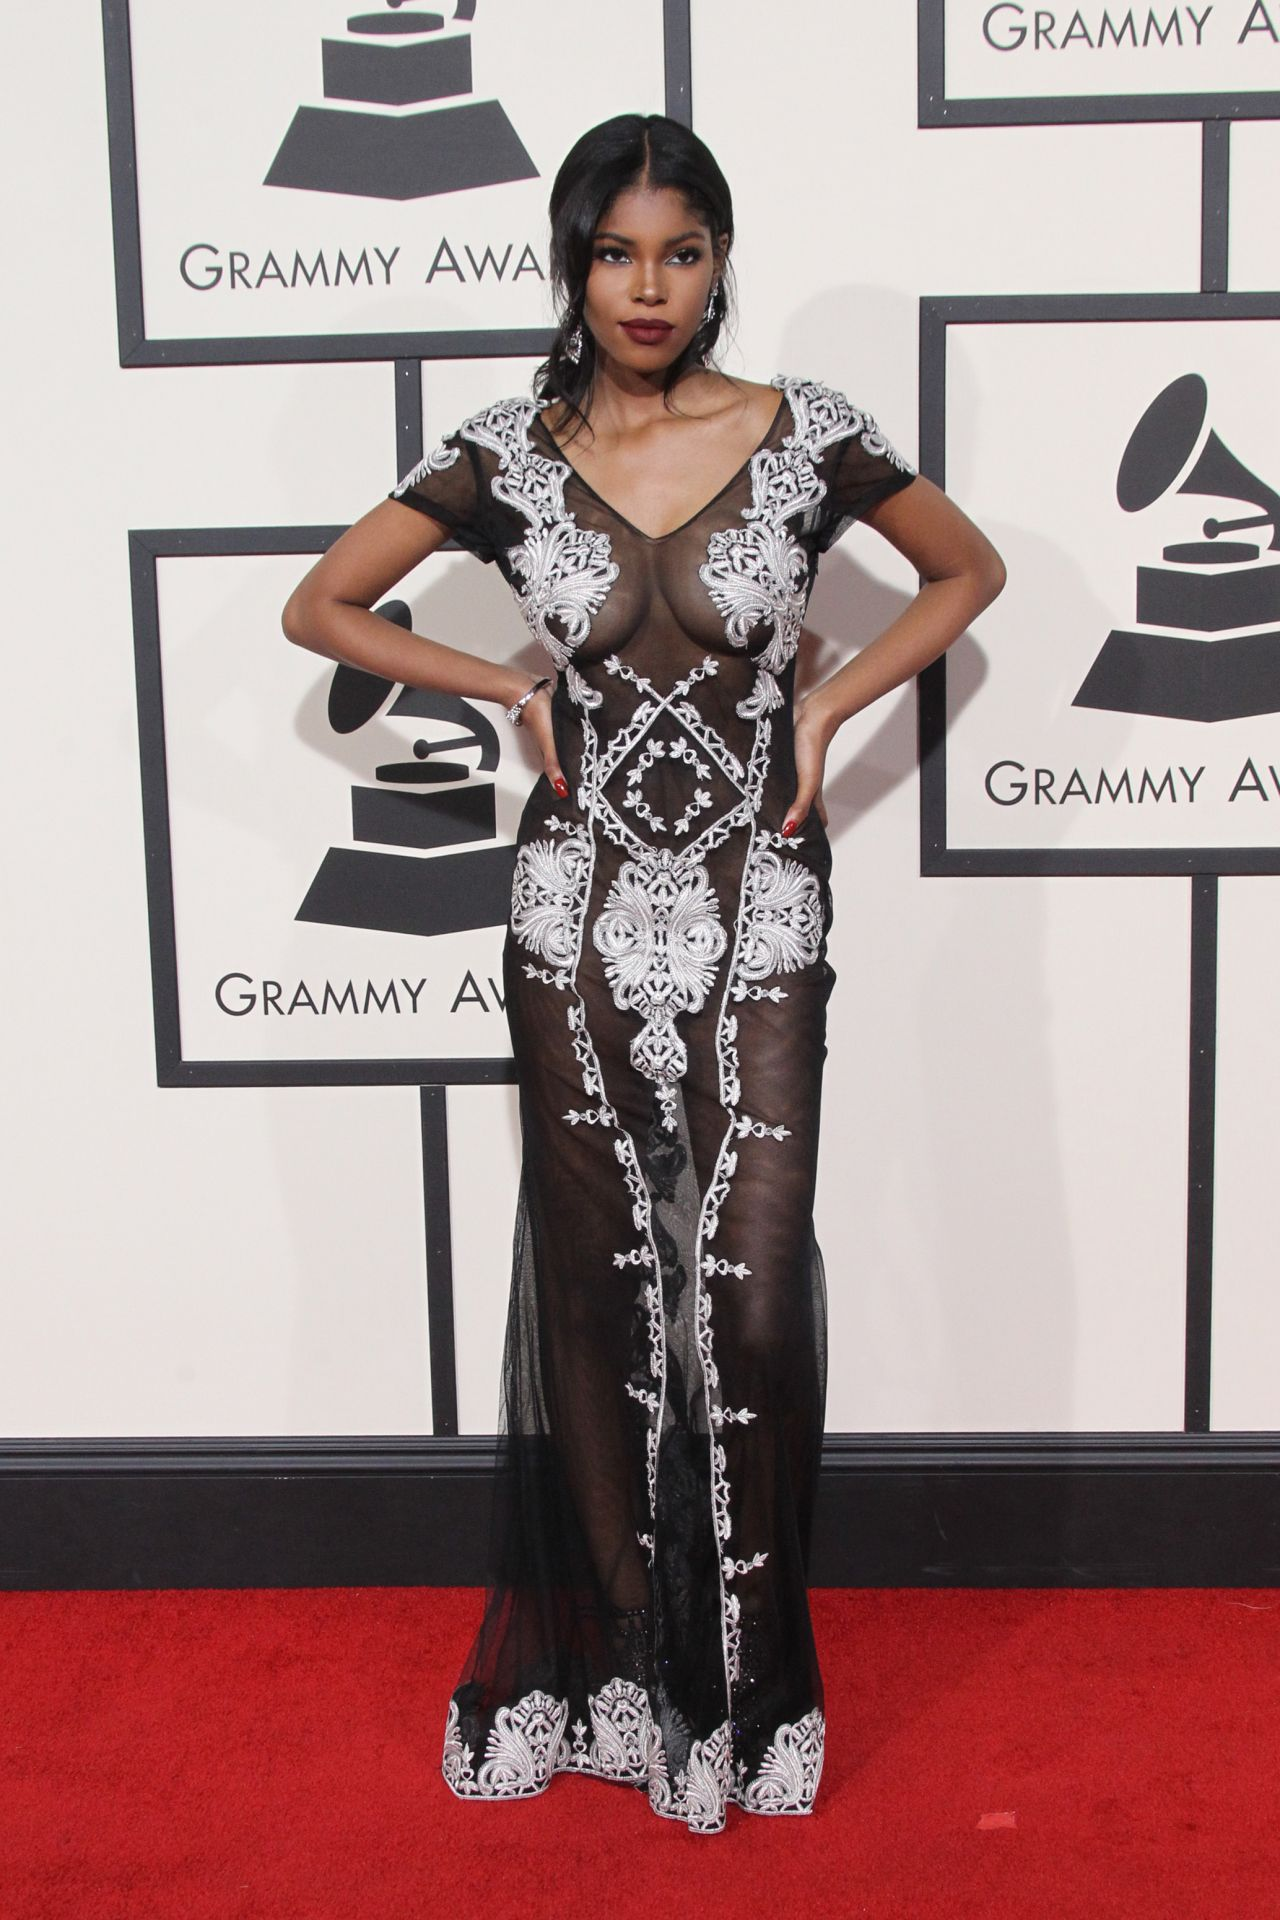 diamond-white-2016-grammy-awards-in-los-angeles-ca-1